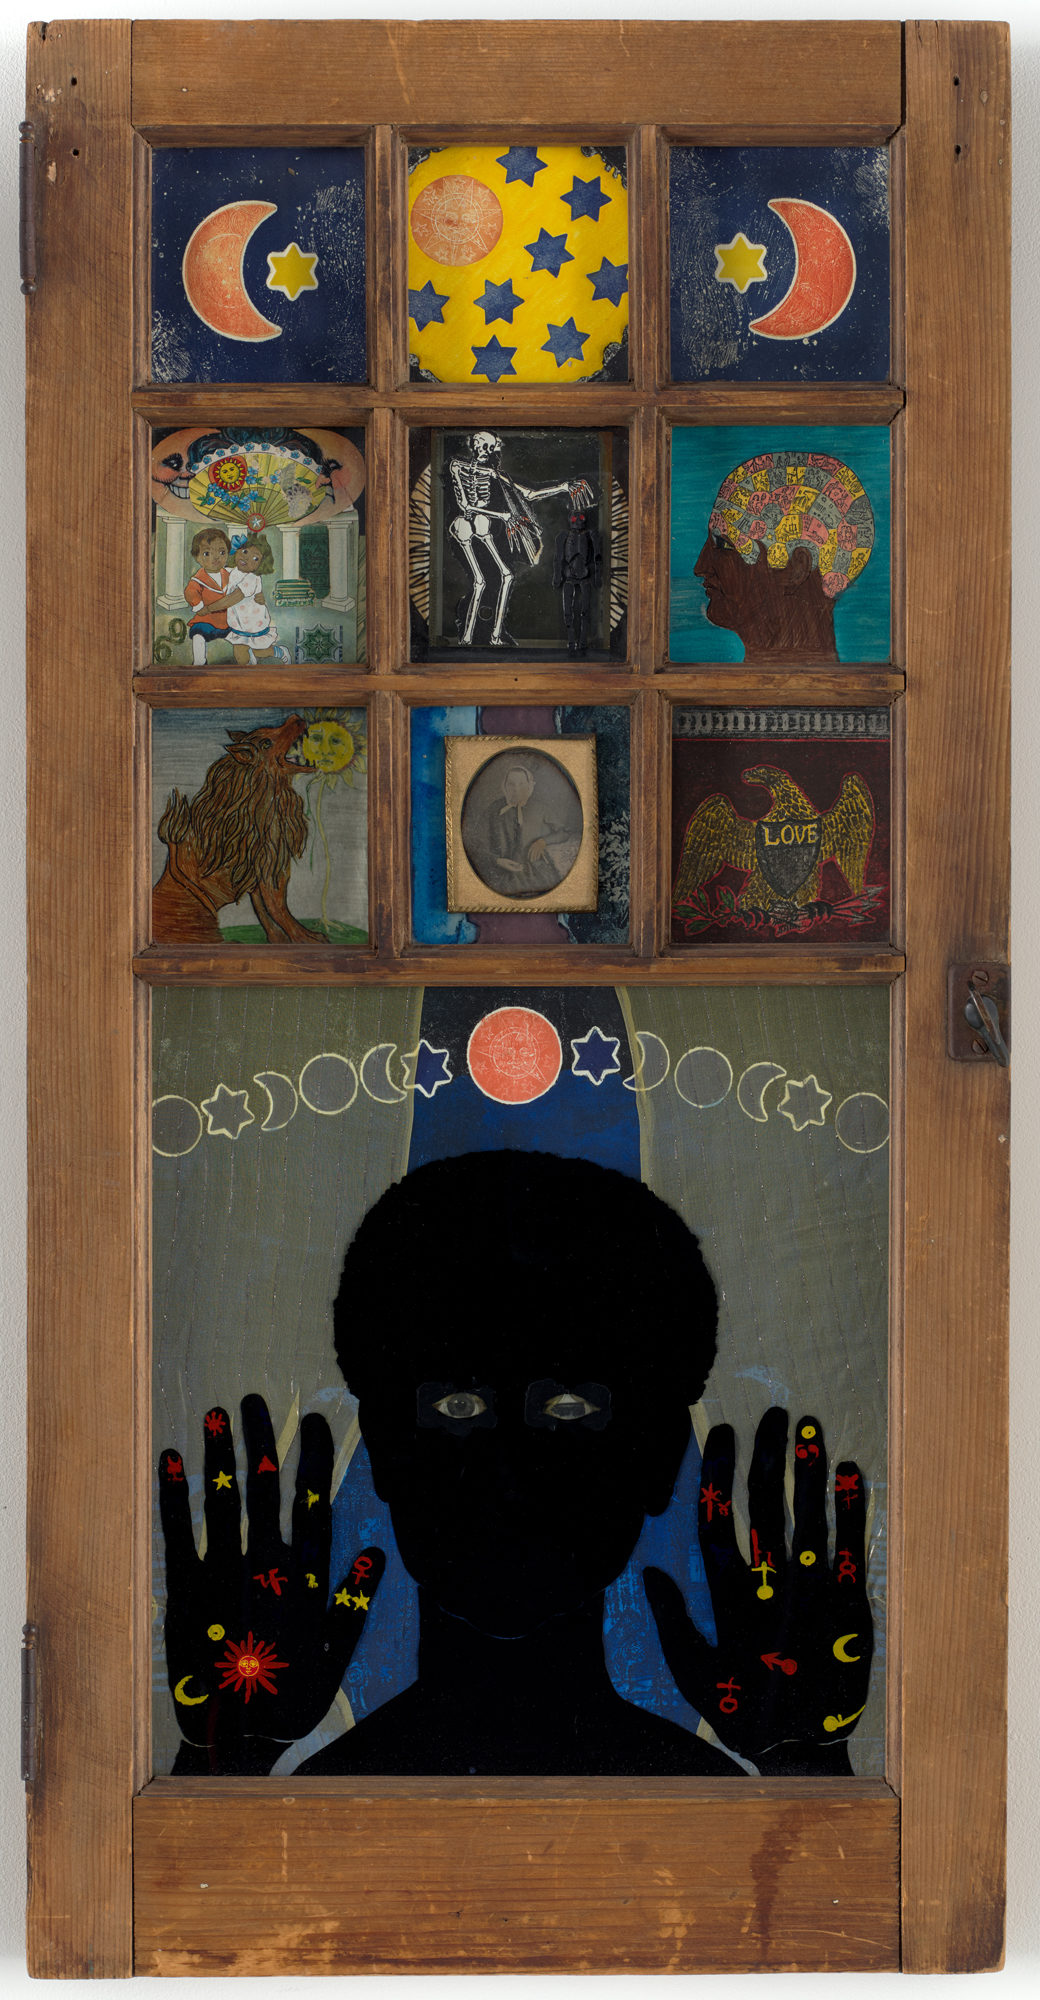 Betye Saar's Black Girl's Window (1969).